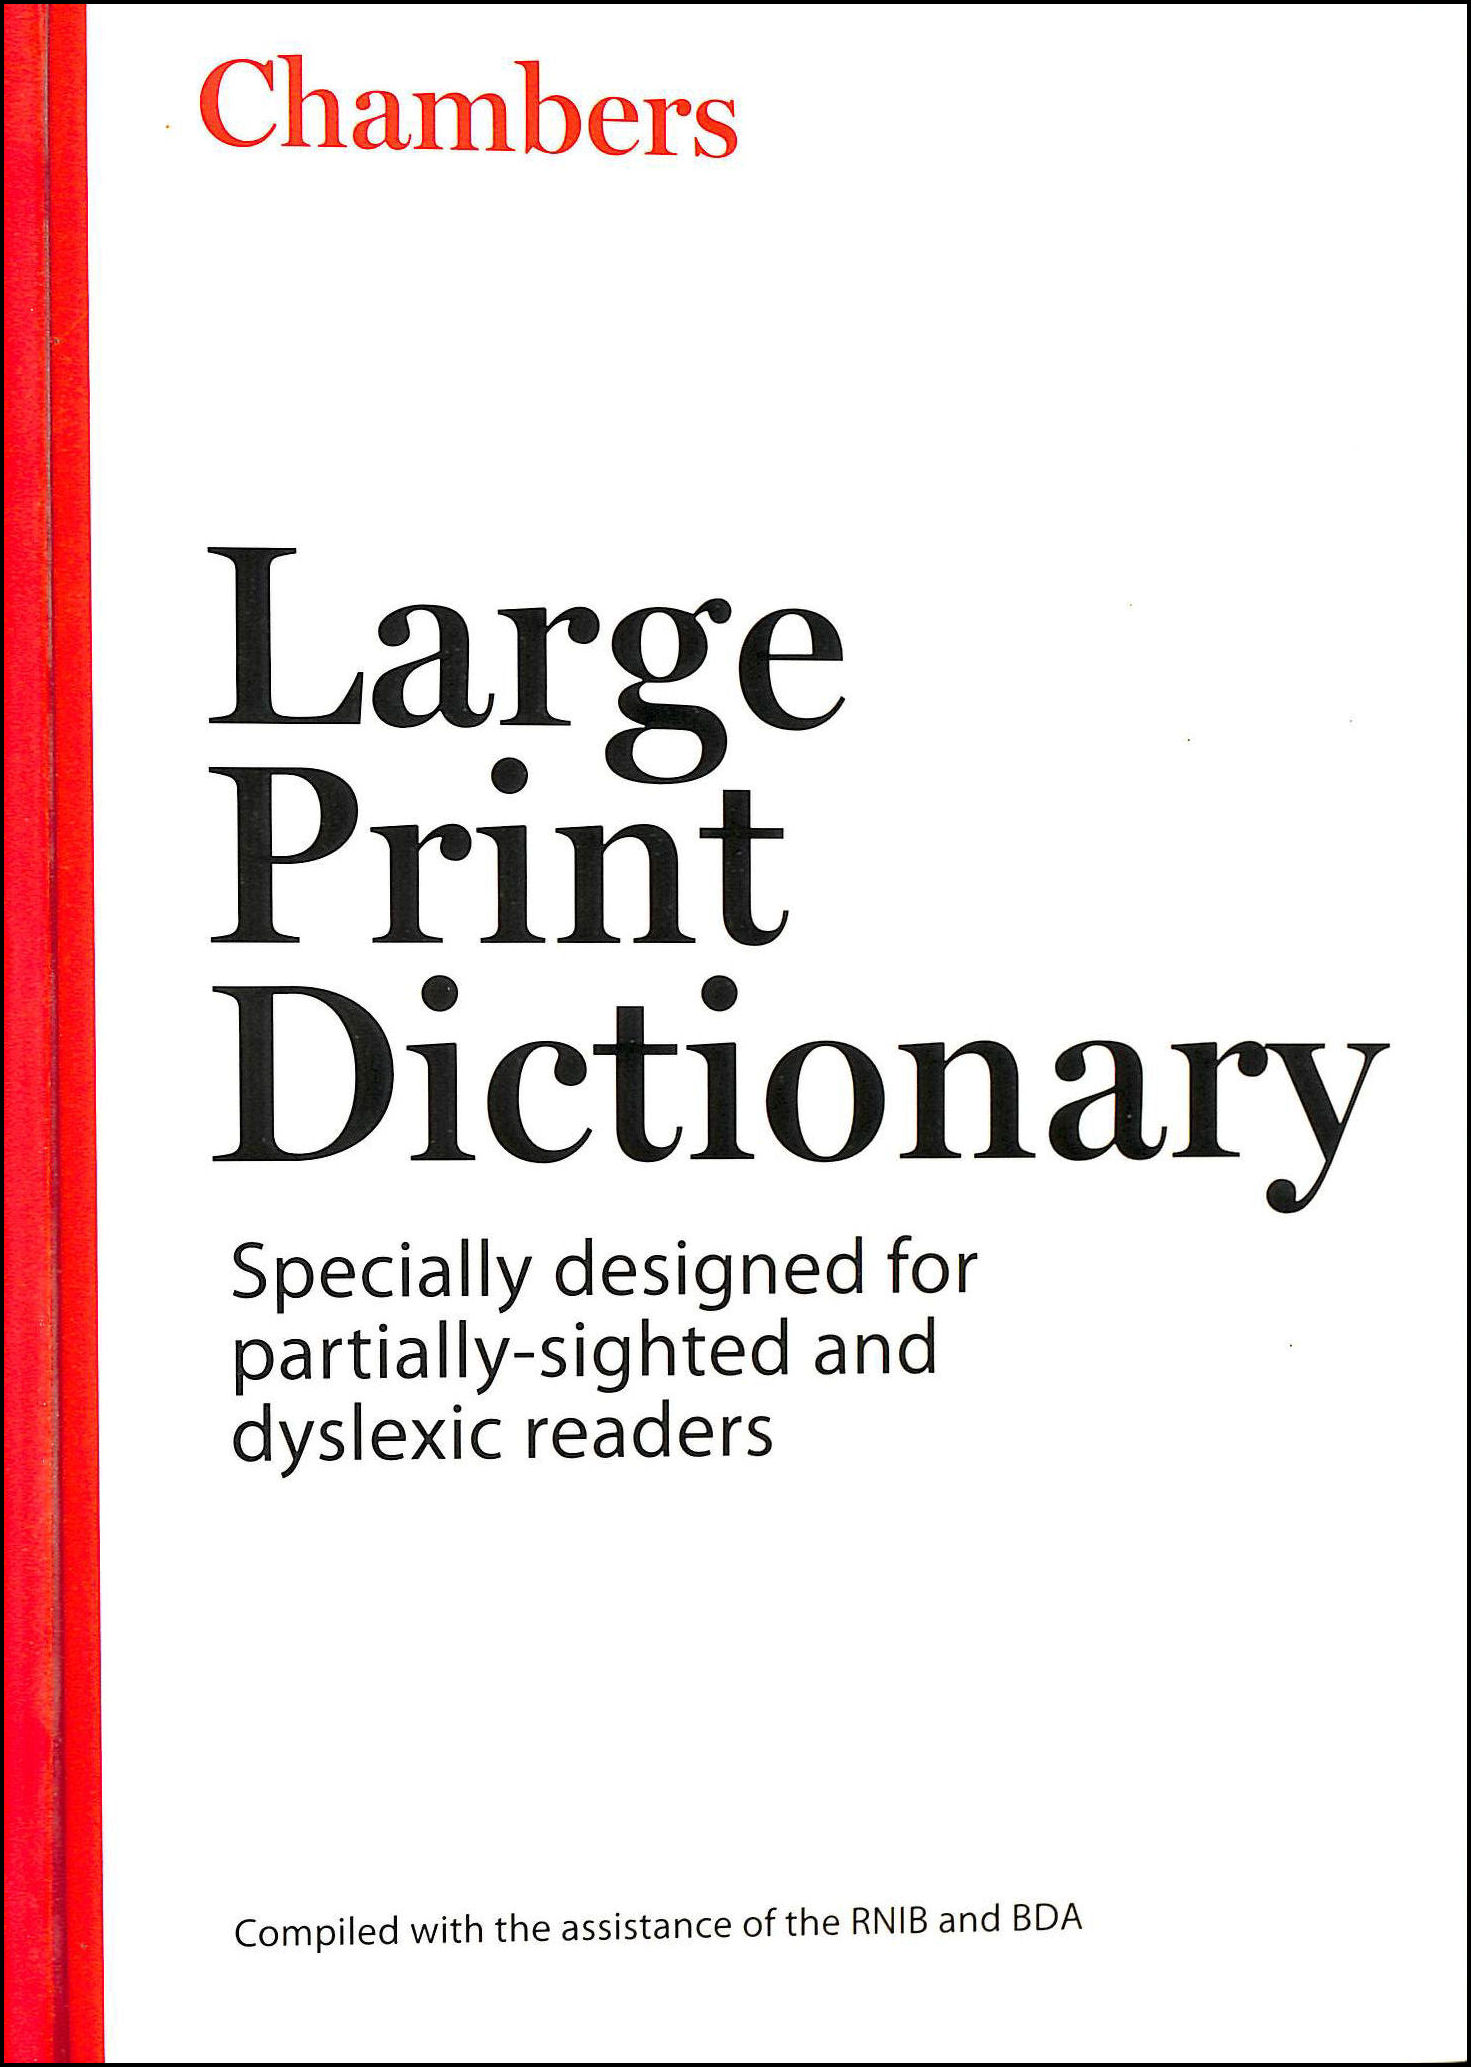 Image for Chambers Large Print Dictionary, 2Nd Edition